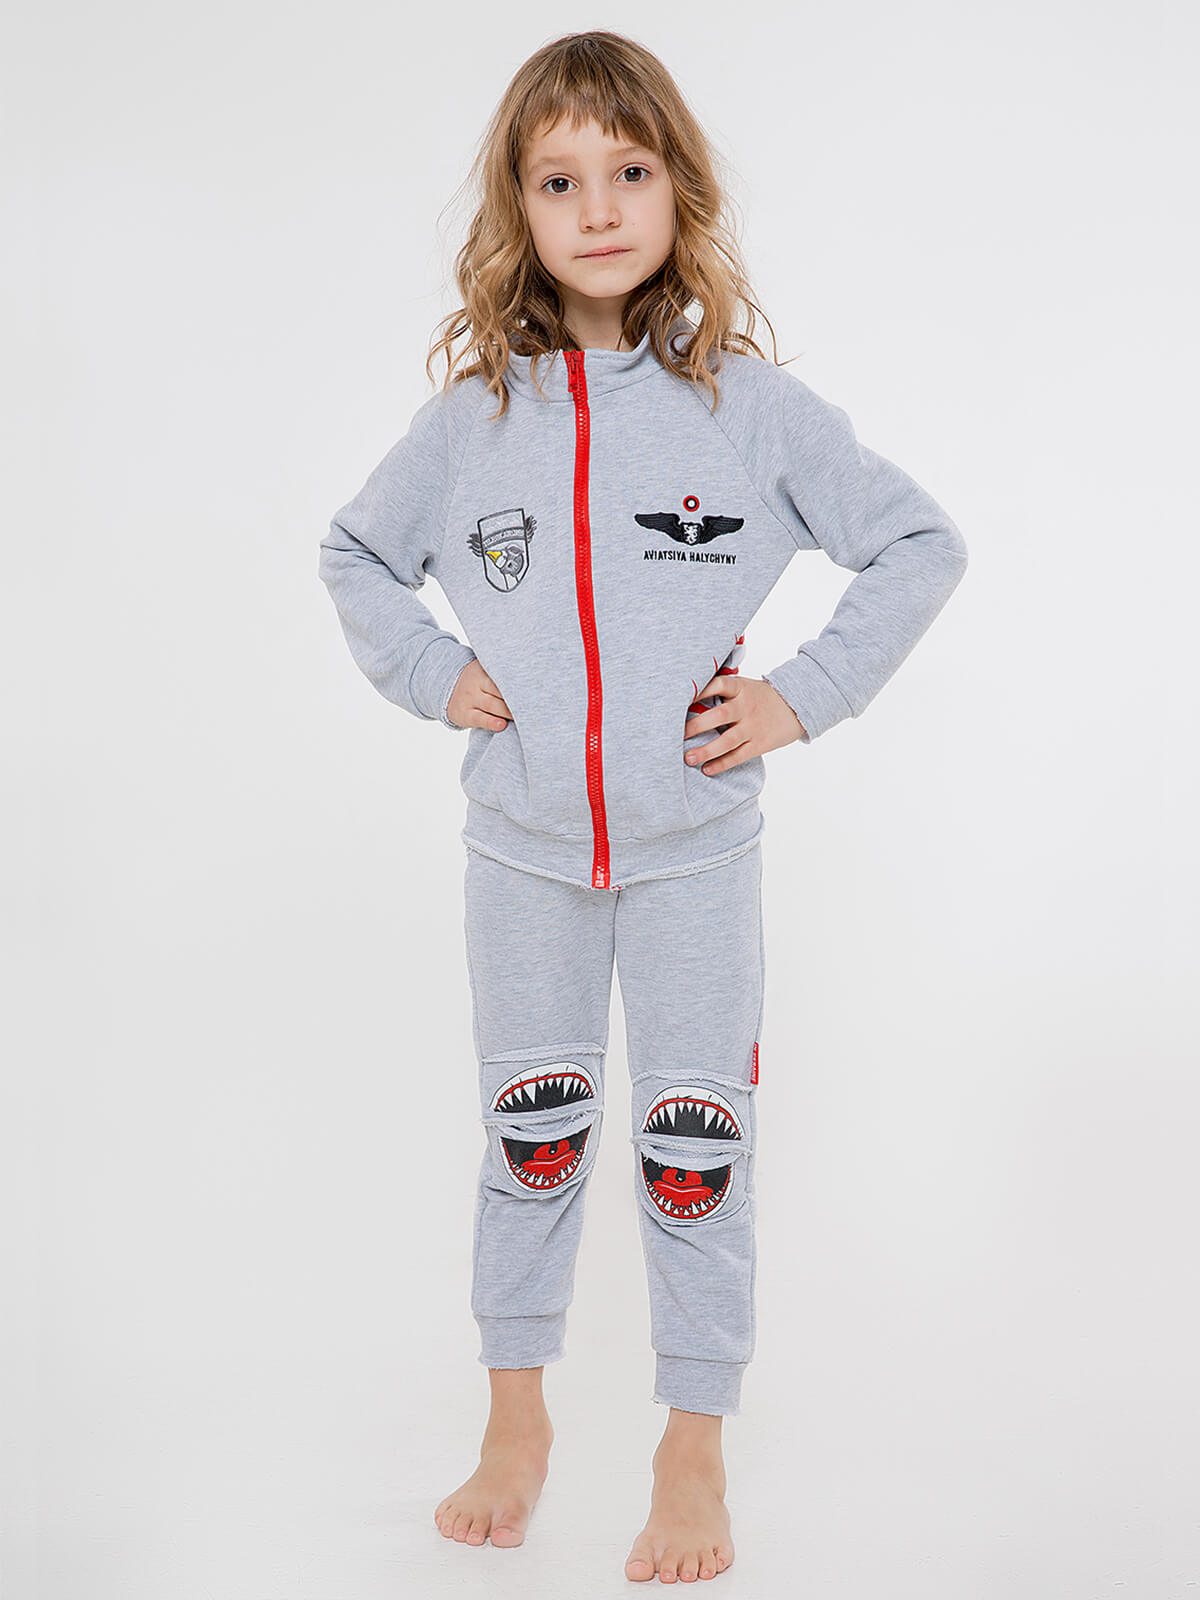 Kids Sport Suit Shark. Color gray. Sport suit: unisex, well suited for both boys and girls.